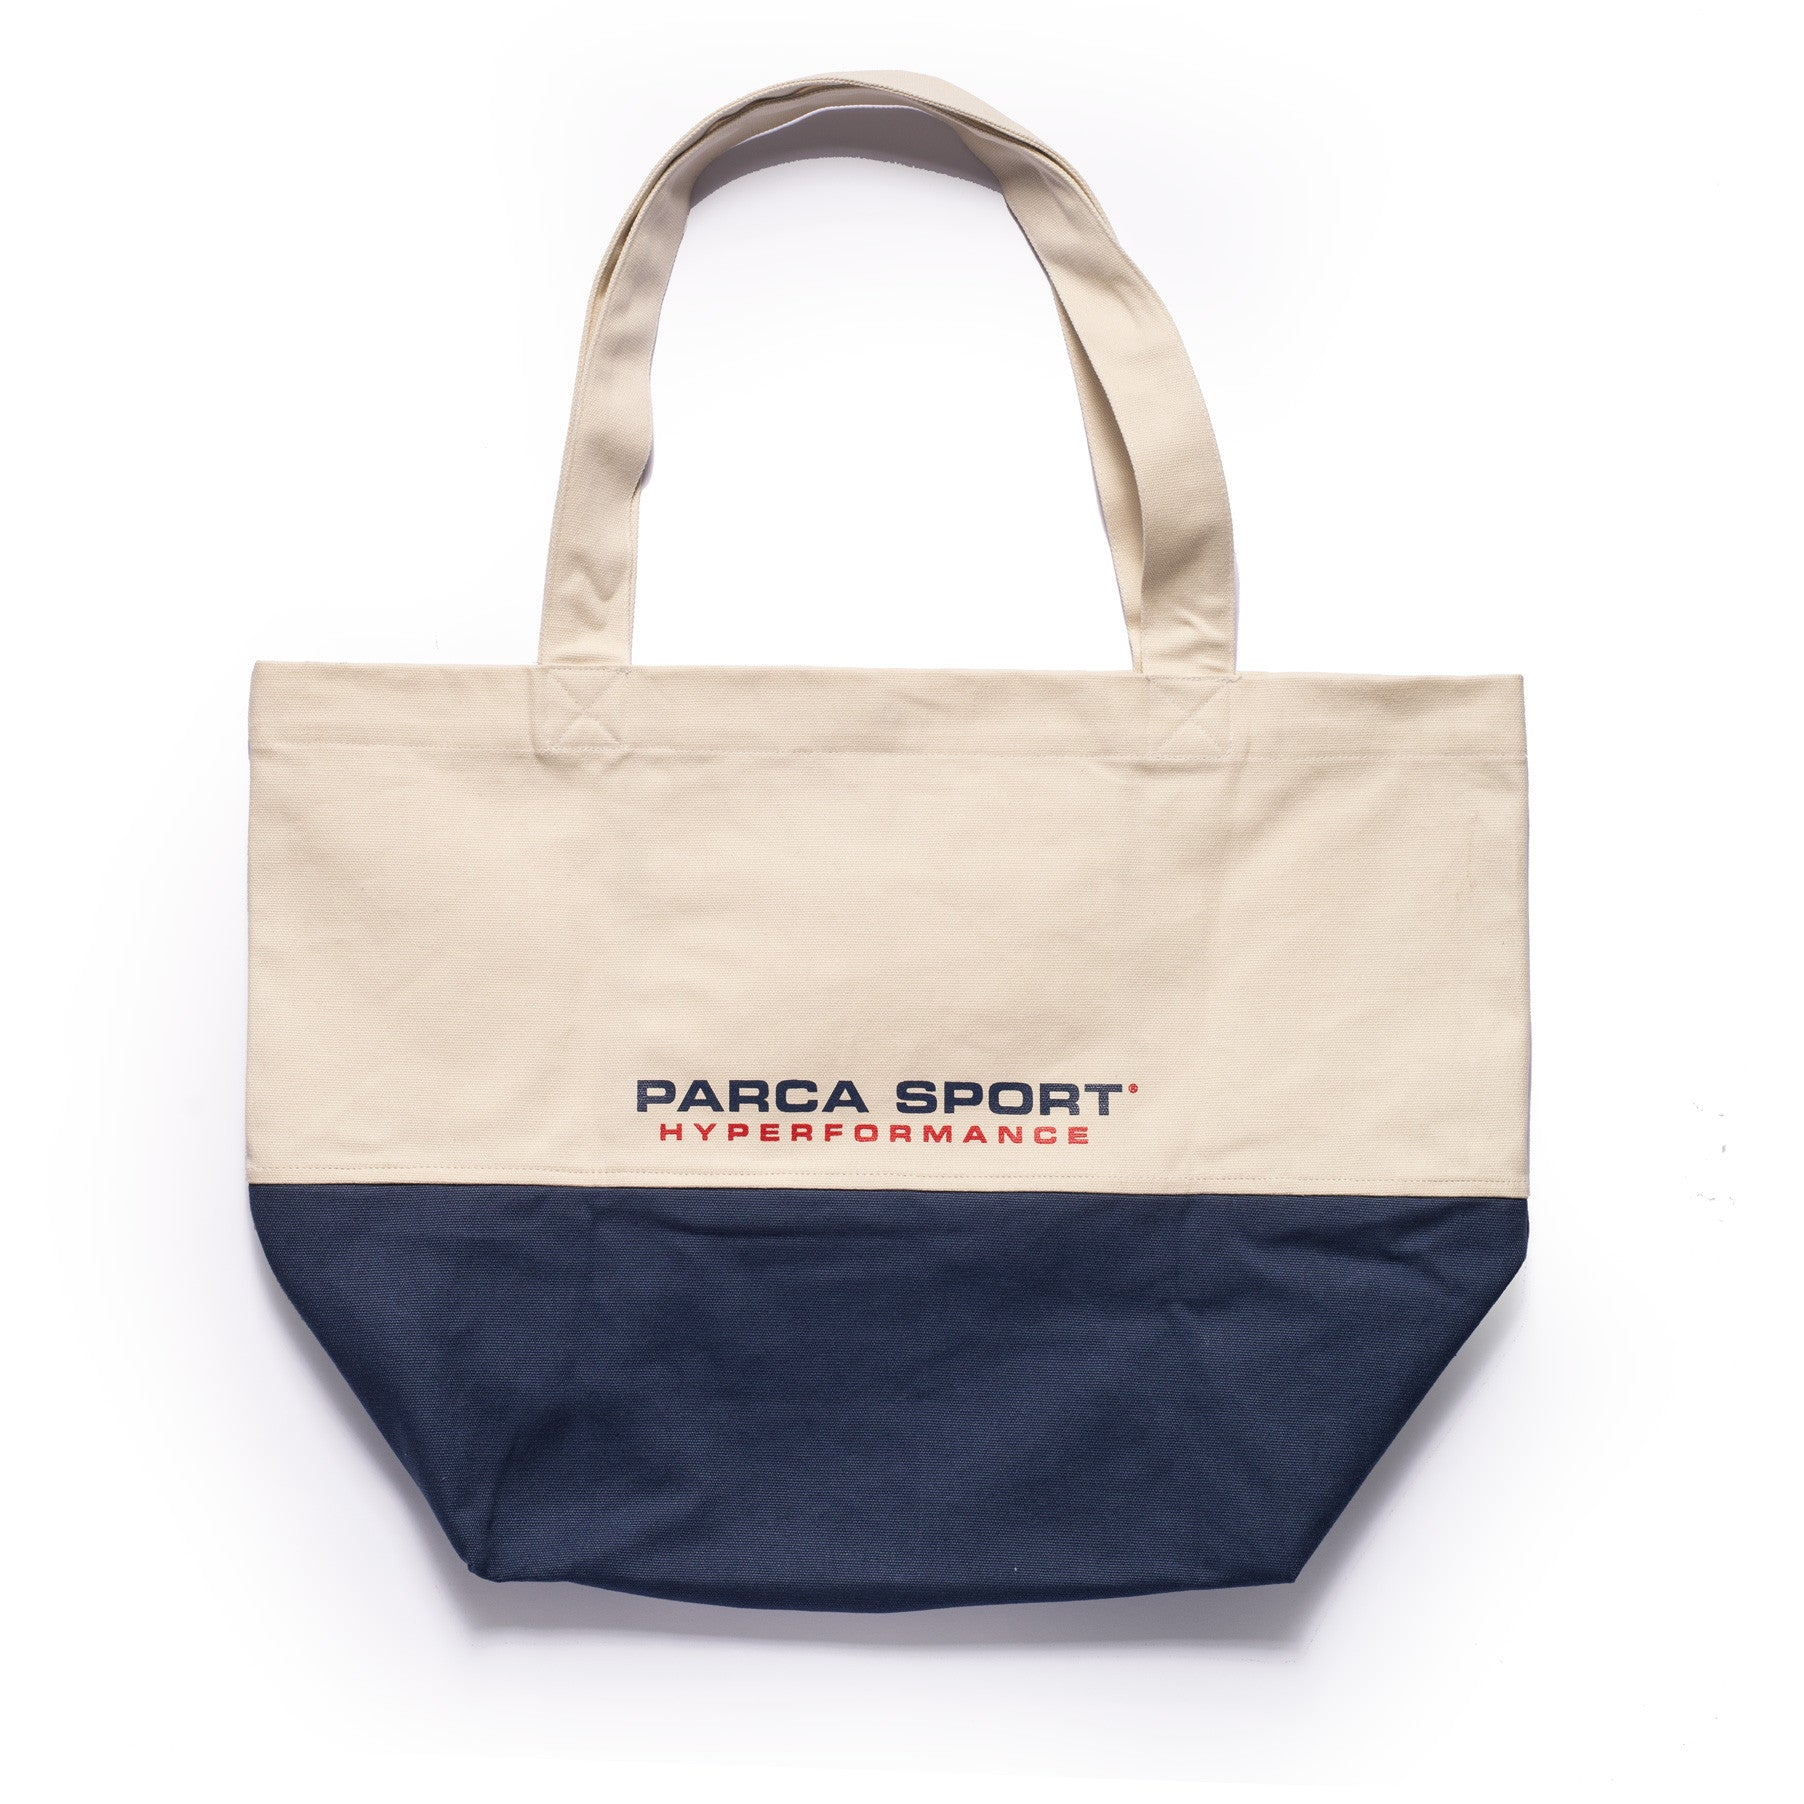 Tote Bag - Hyperformance - Navy/White